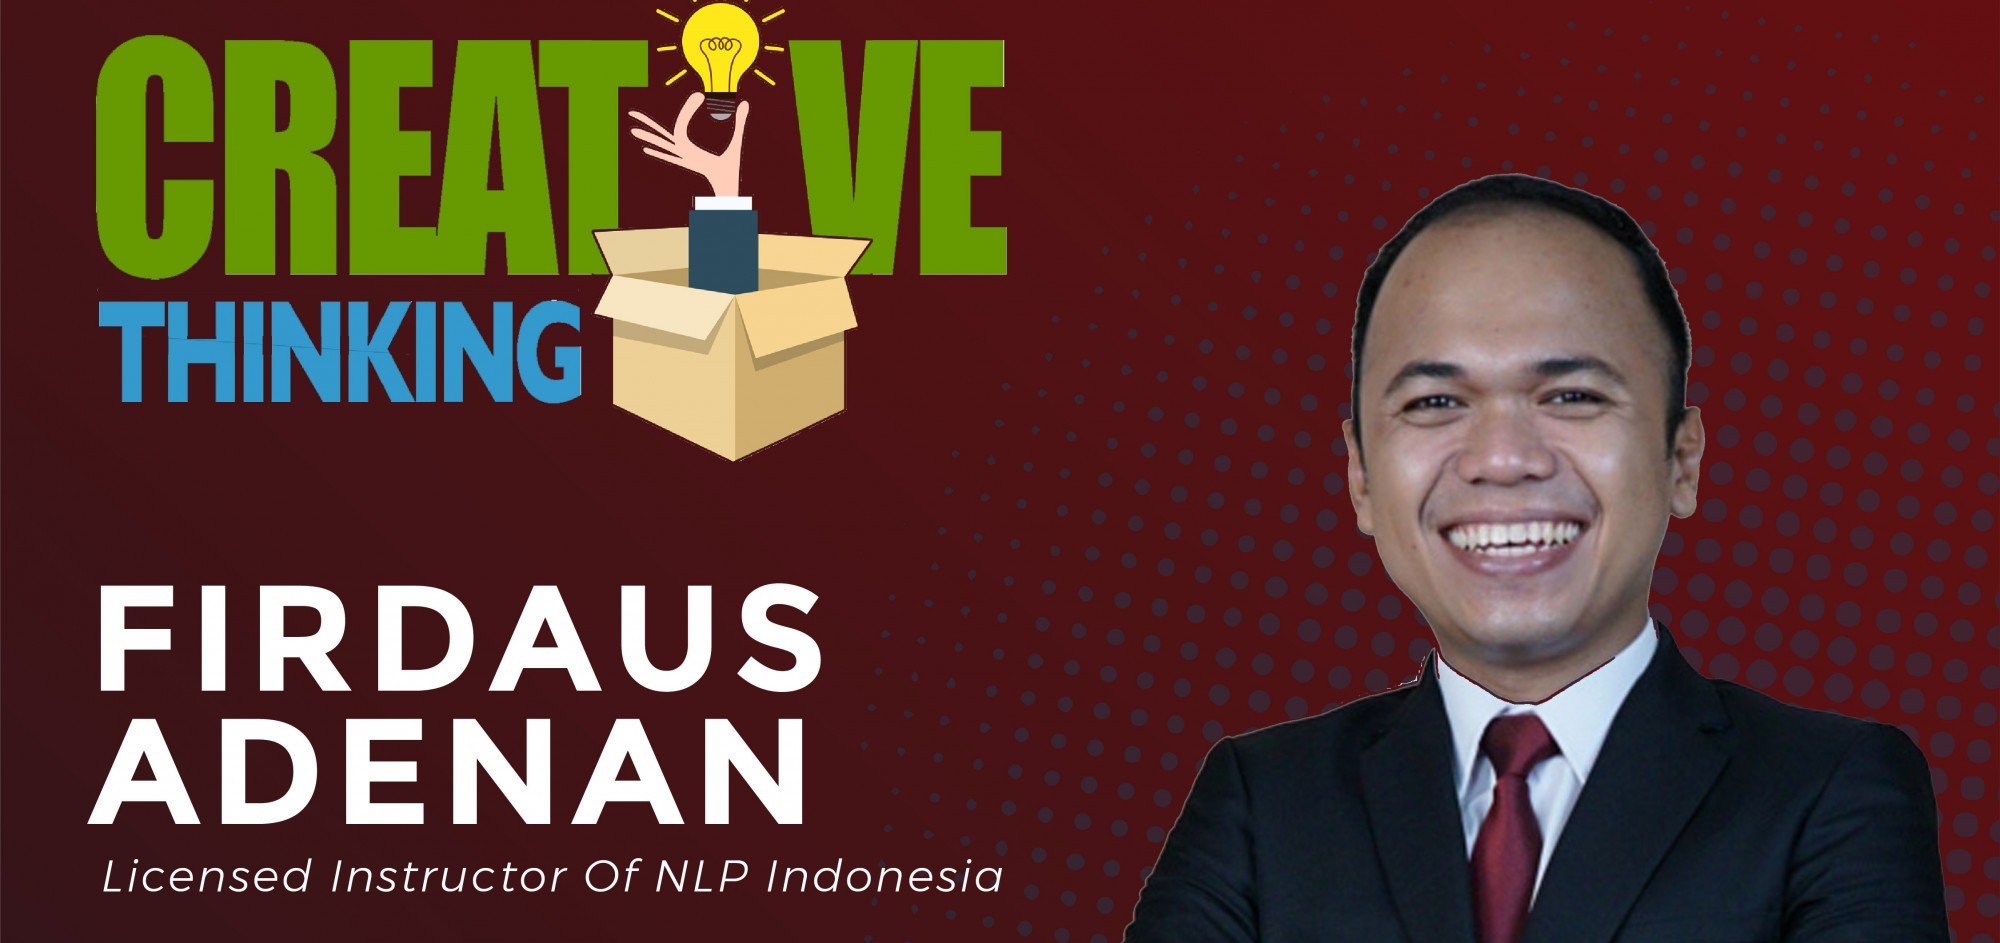 CREATIVE THINKING with dr. Firdaus Adenan